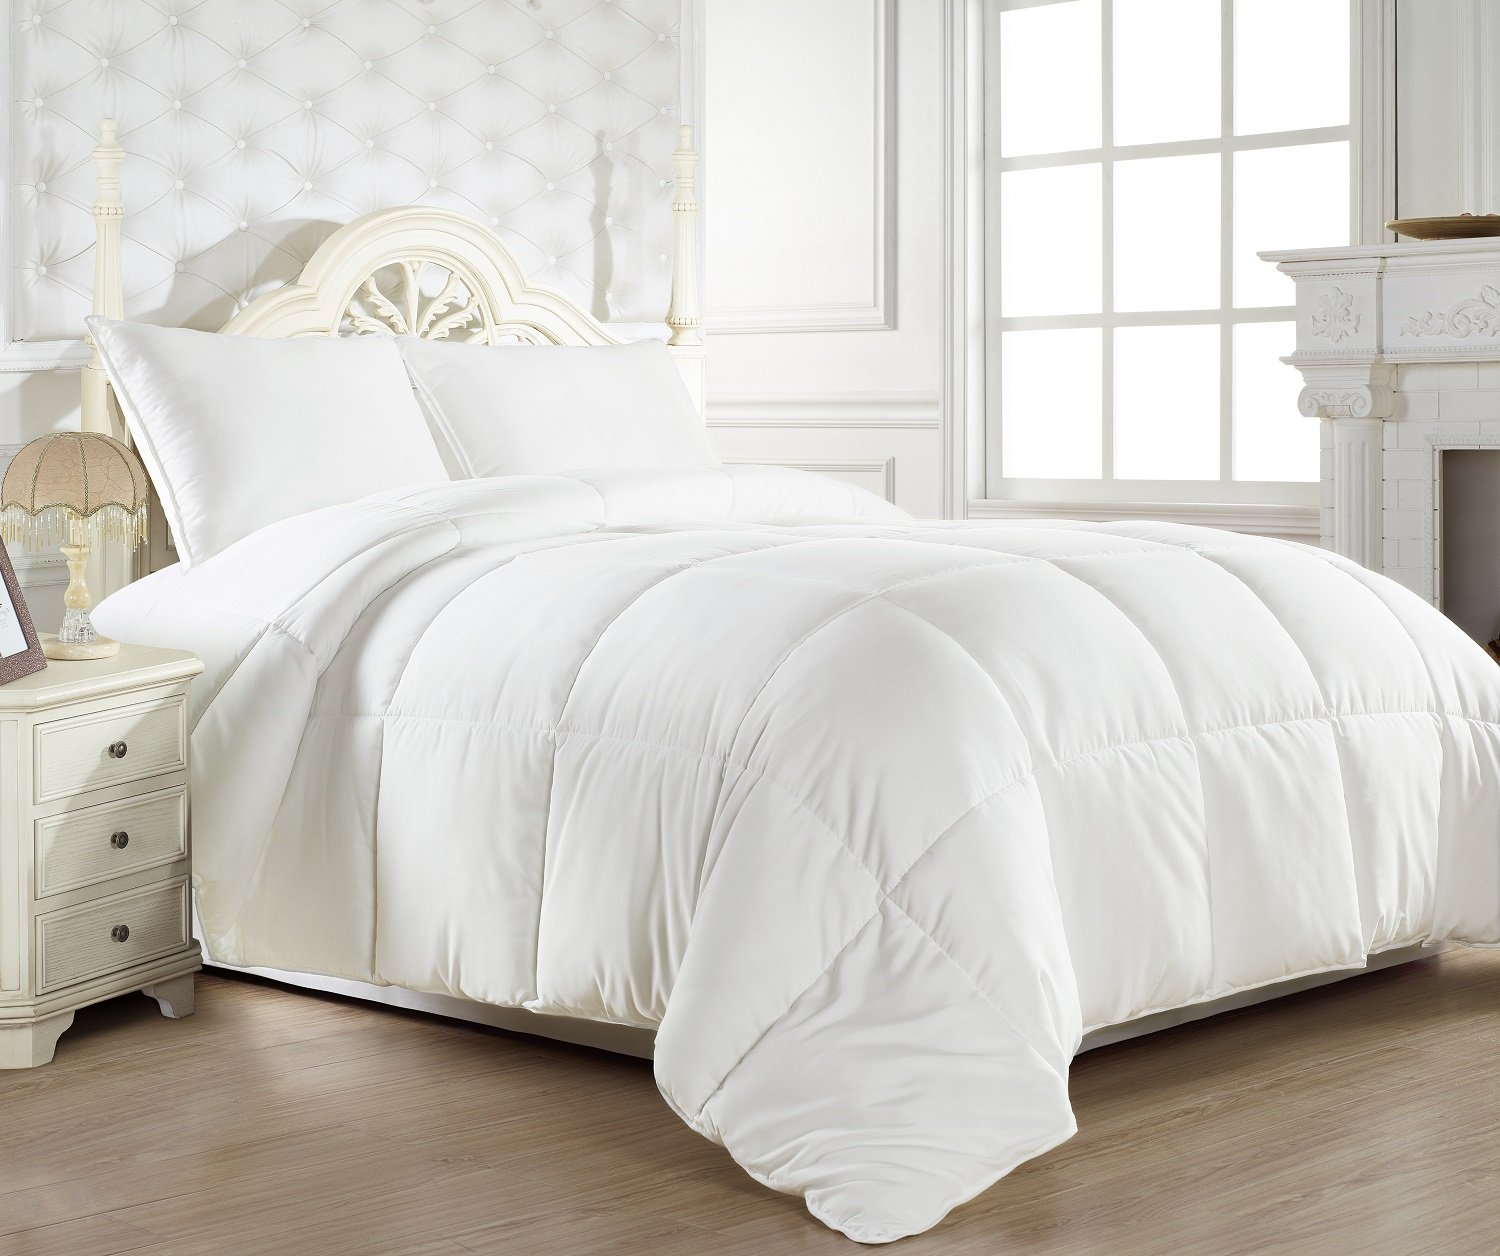 """Full/Queen 88""""x88"""" White Down Alternative Comforter Duvet Insert - Corner Tabs, Double Stitches, Piped Edges, Siliconized Fiber, Protects Against Dust Mites, Hypoallergenic, Allergy Free"""